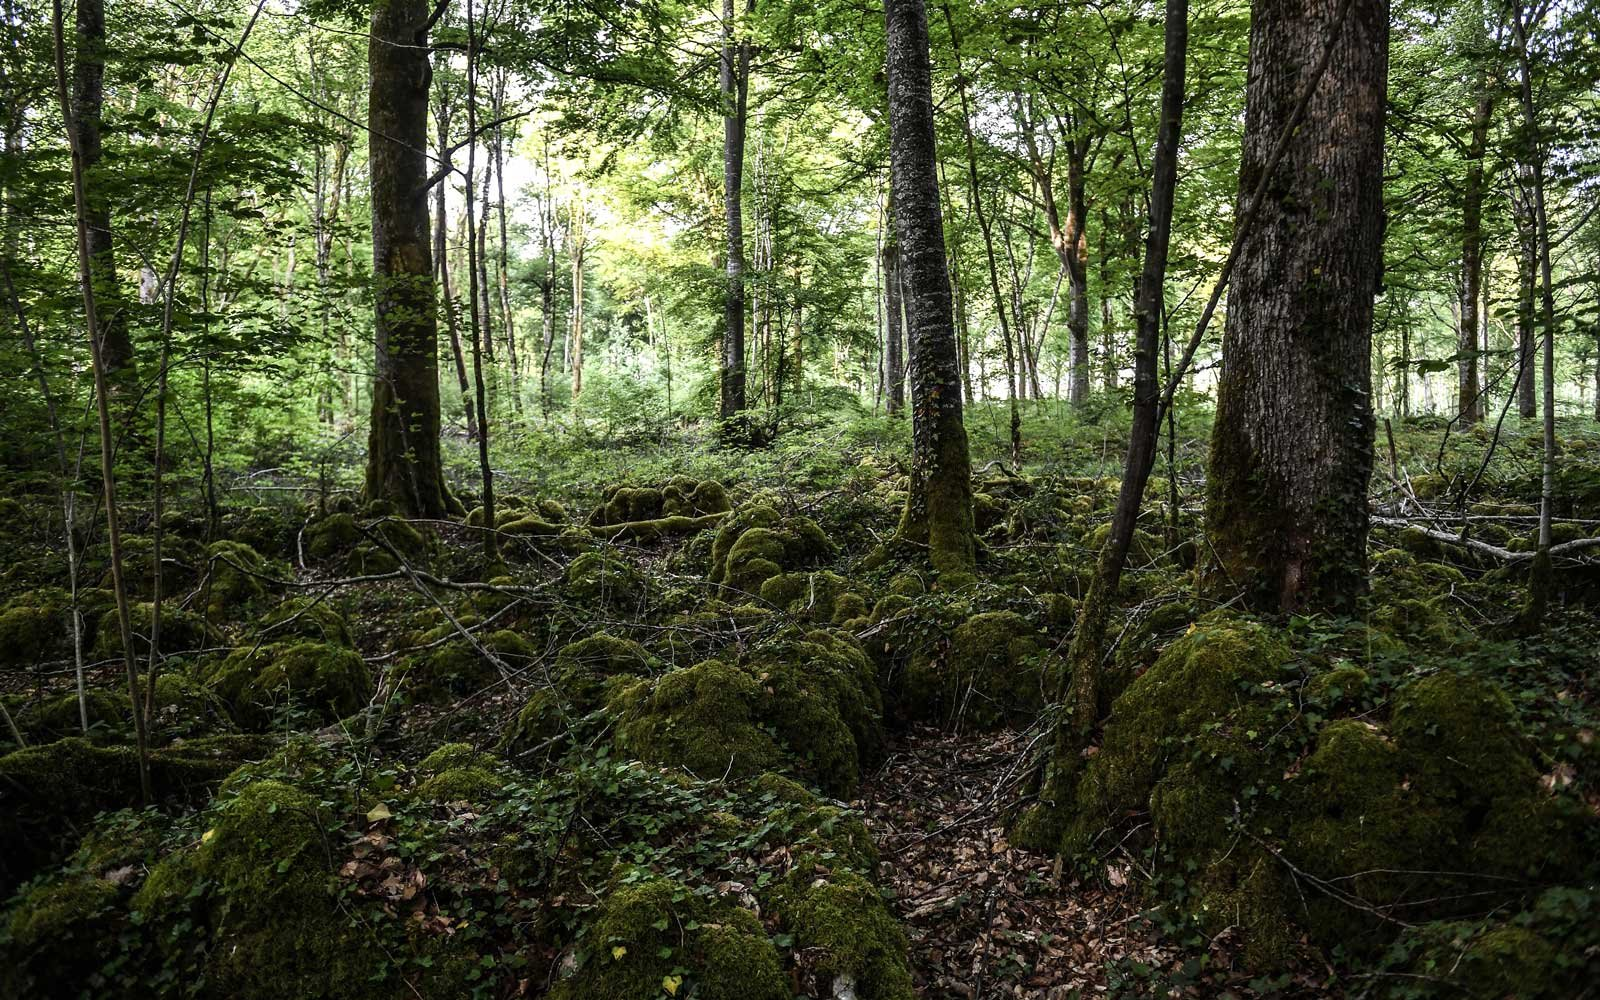 A picture taken on May 23, 2017 shows a view of the future National Park of Champagne and Bourgogne forests near Chatillon-sur-Seine.